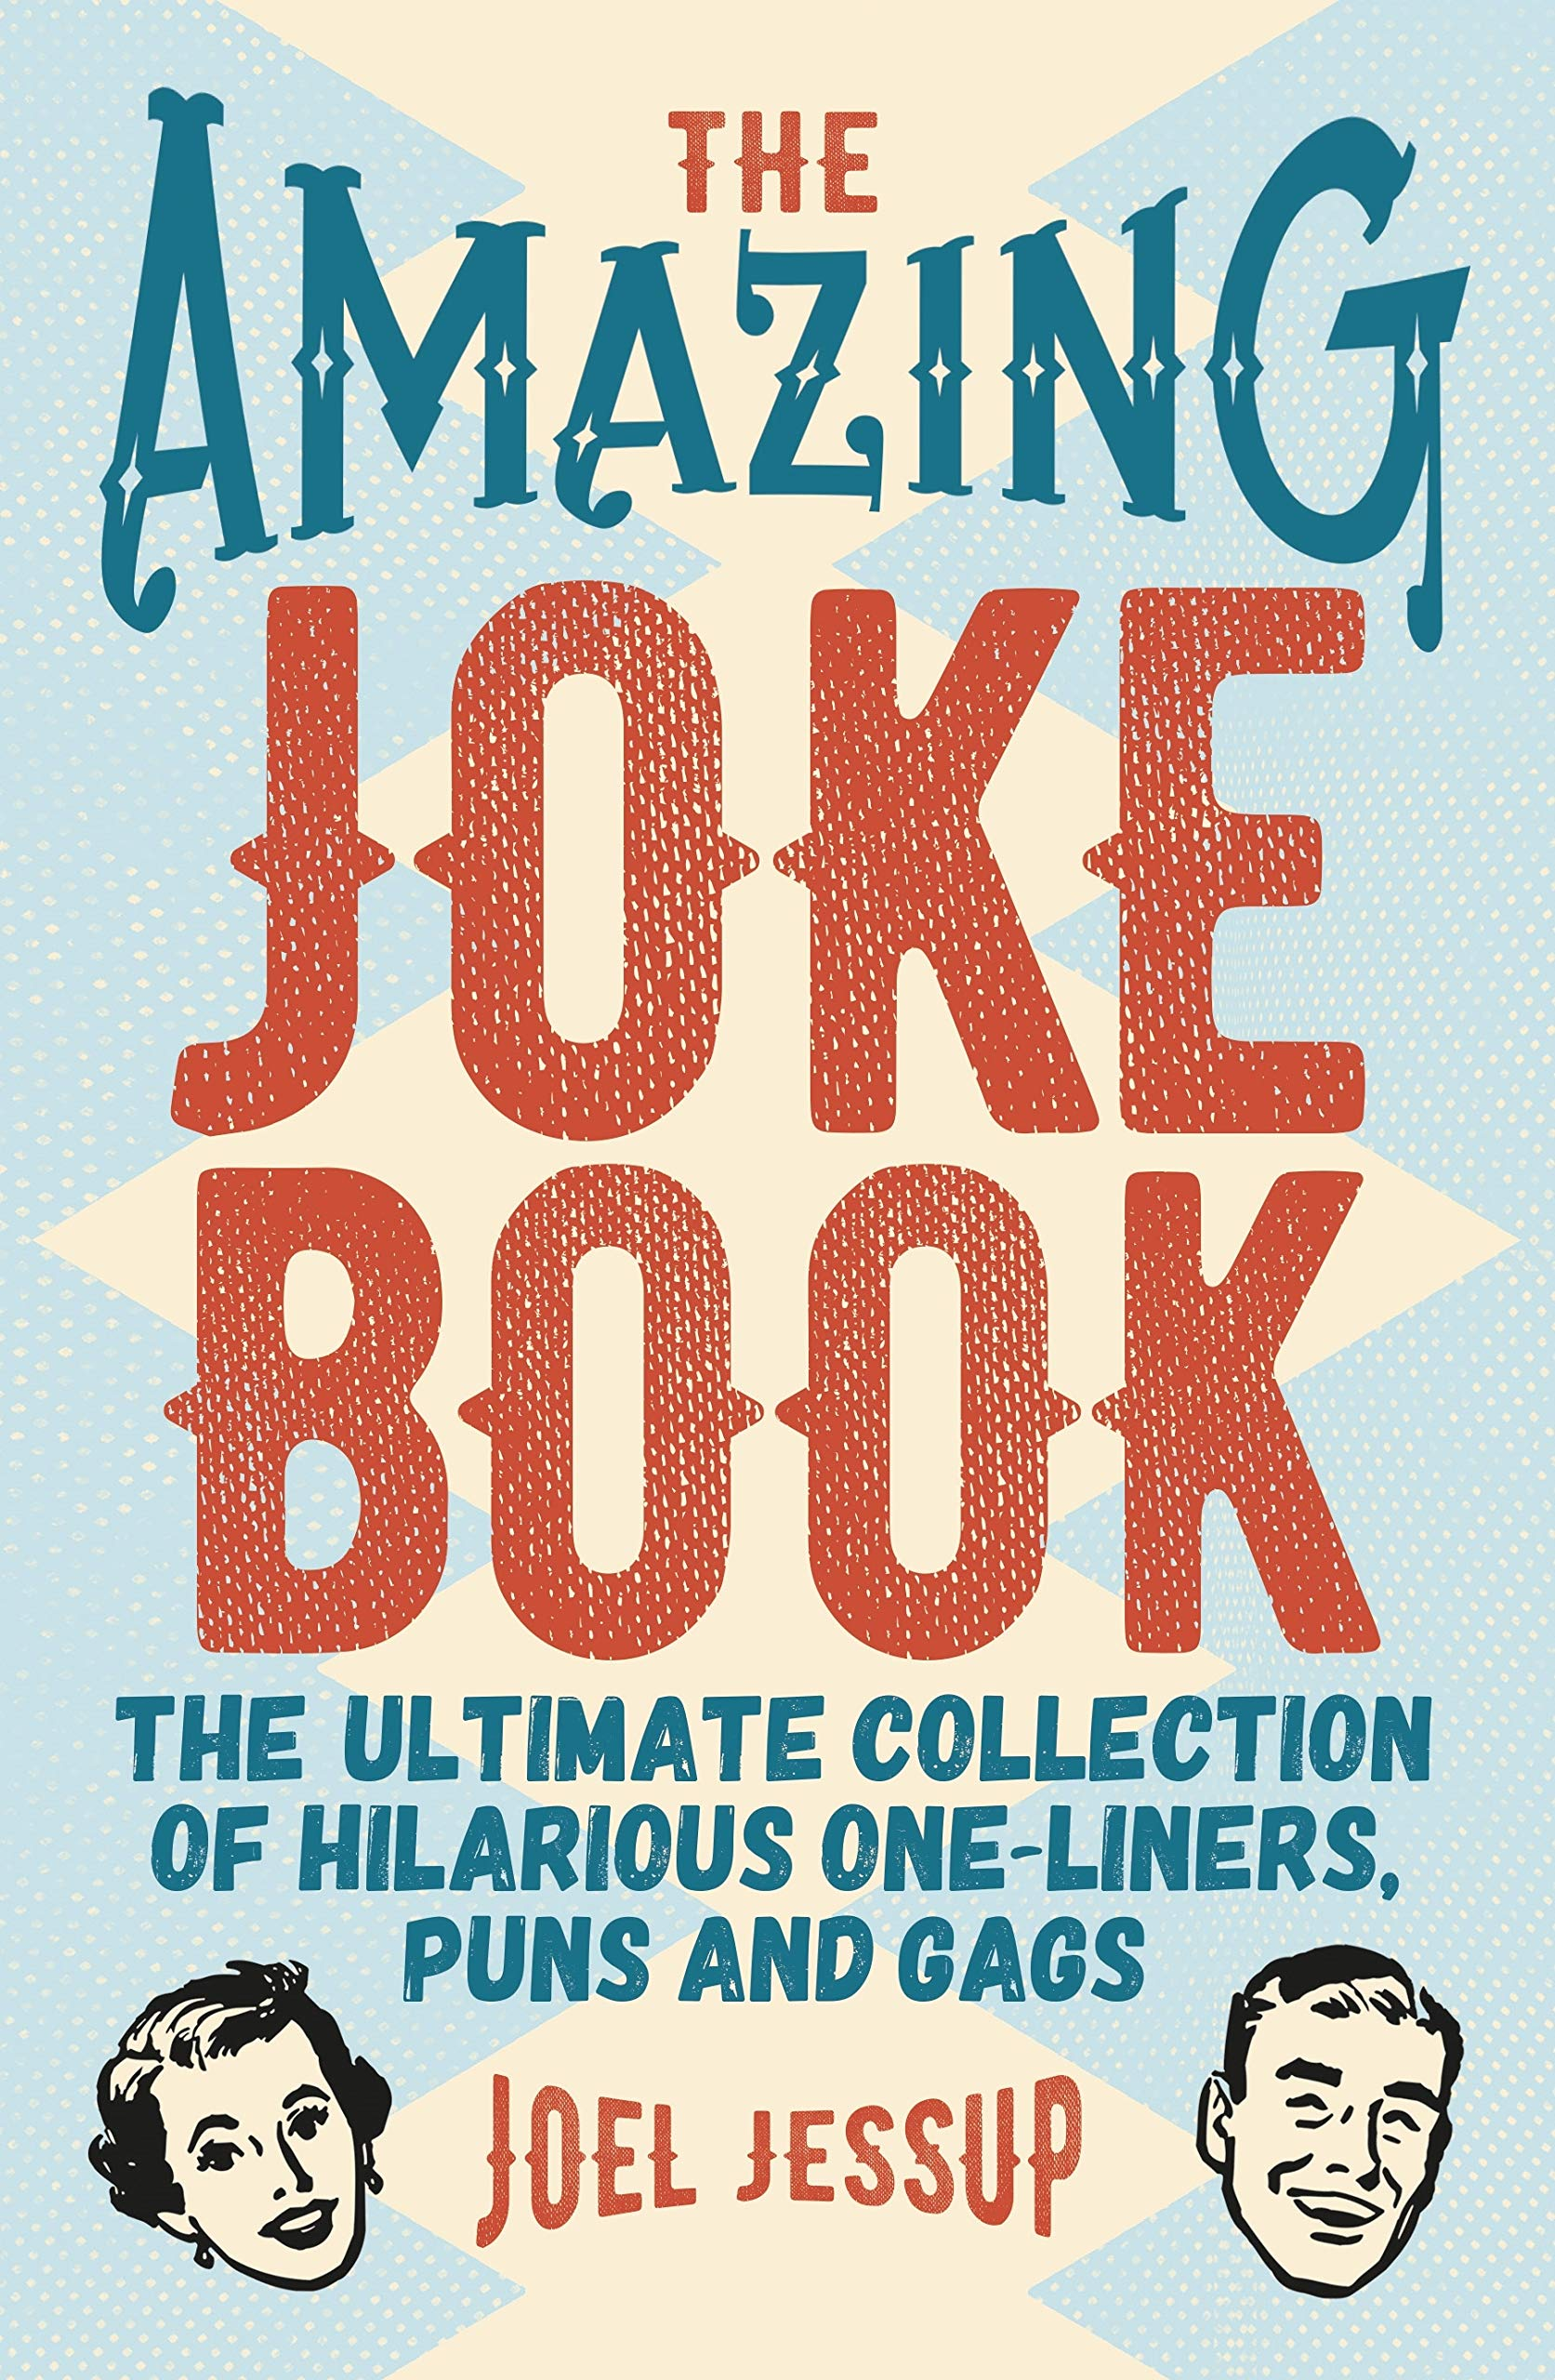 The Amazing Joke Book: The Ultimate Collection of Hilarious